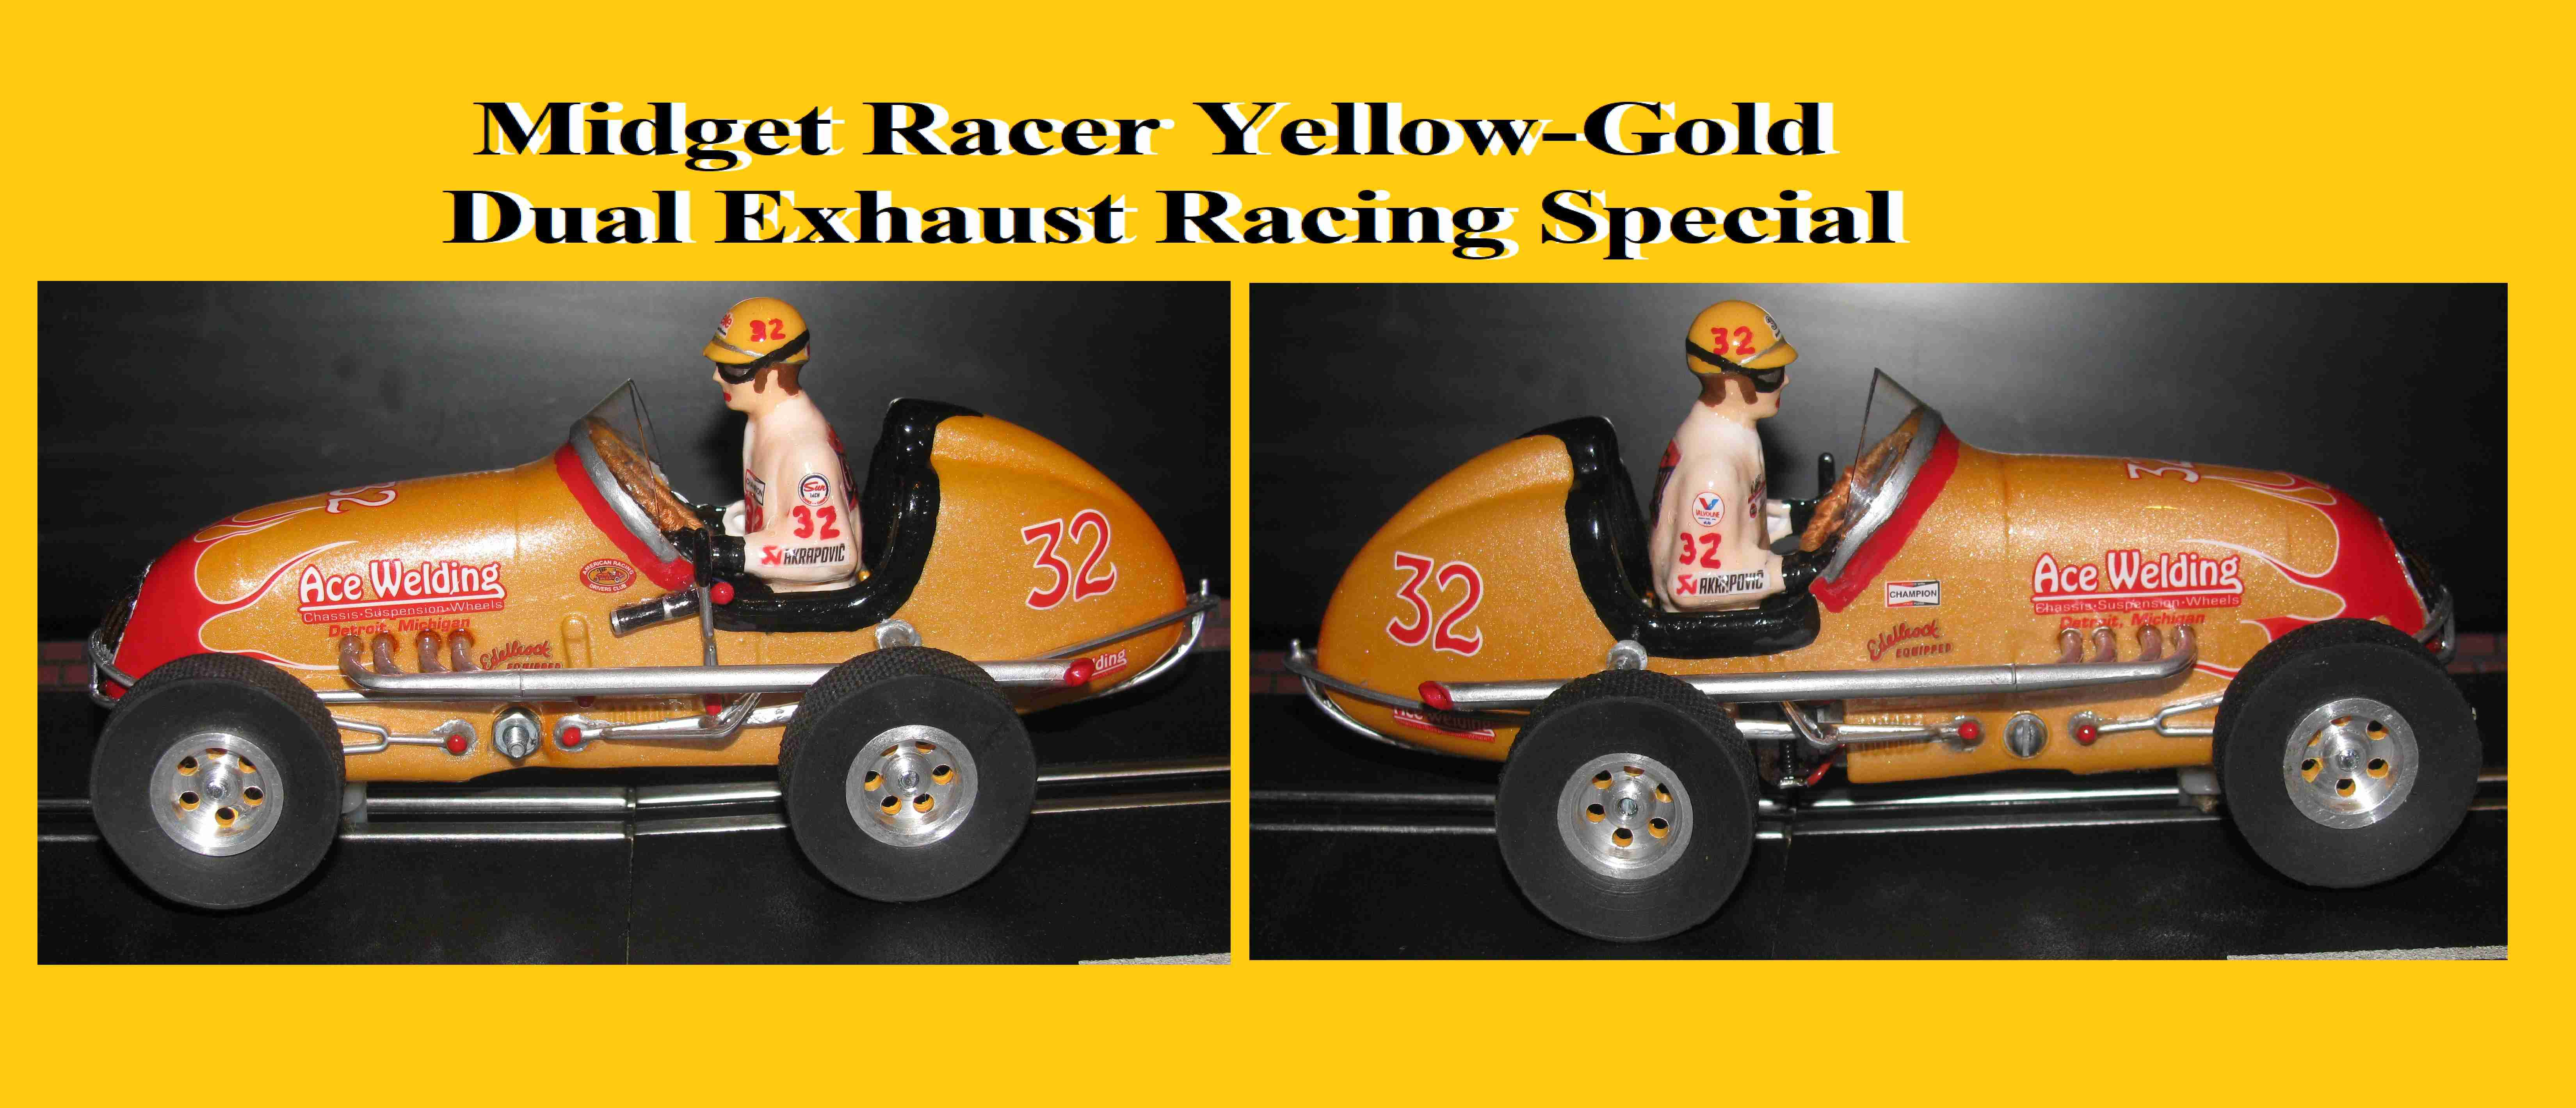 *SOLD * * SALE * * FOR CHARLES E. ONLY * Monogram Midget Racer Yellow-Gold Dual Exhaust Racing Special Slot Car 1/24 Scale (Revell Style Yellow-Gold Pearl Custom)